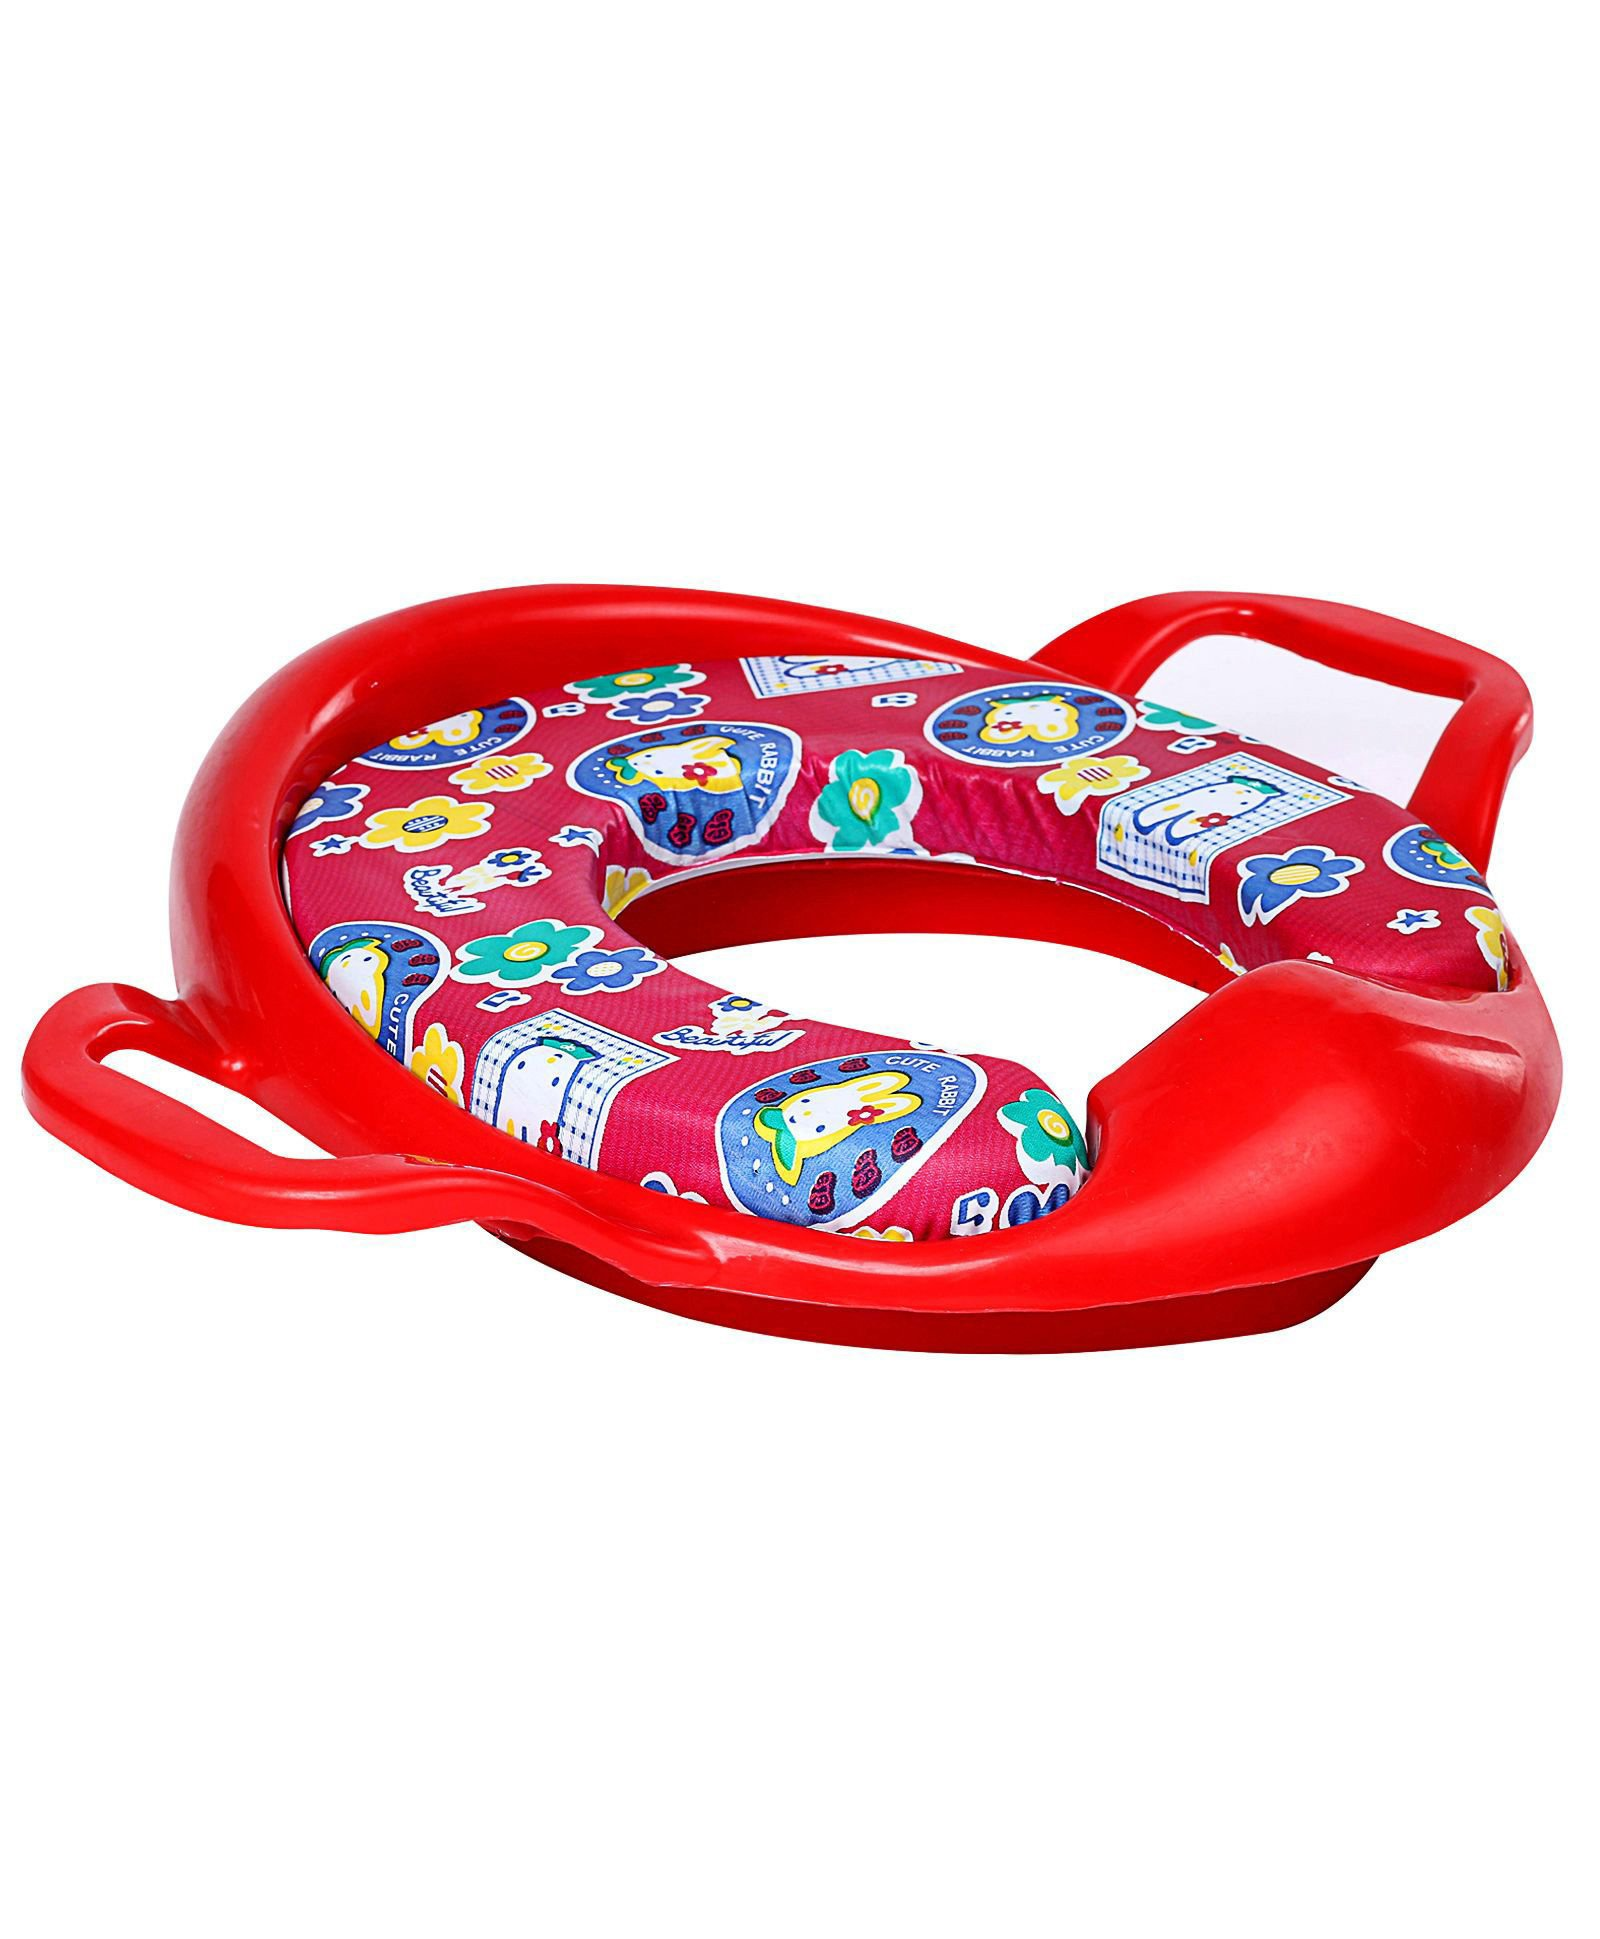 Babyhug Cushioned Potty Training Seat With Handle - Red